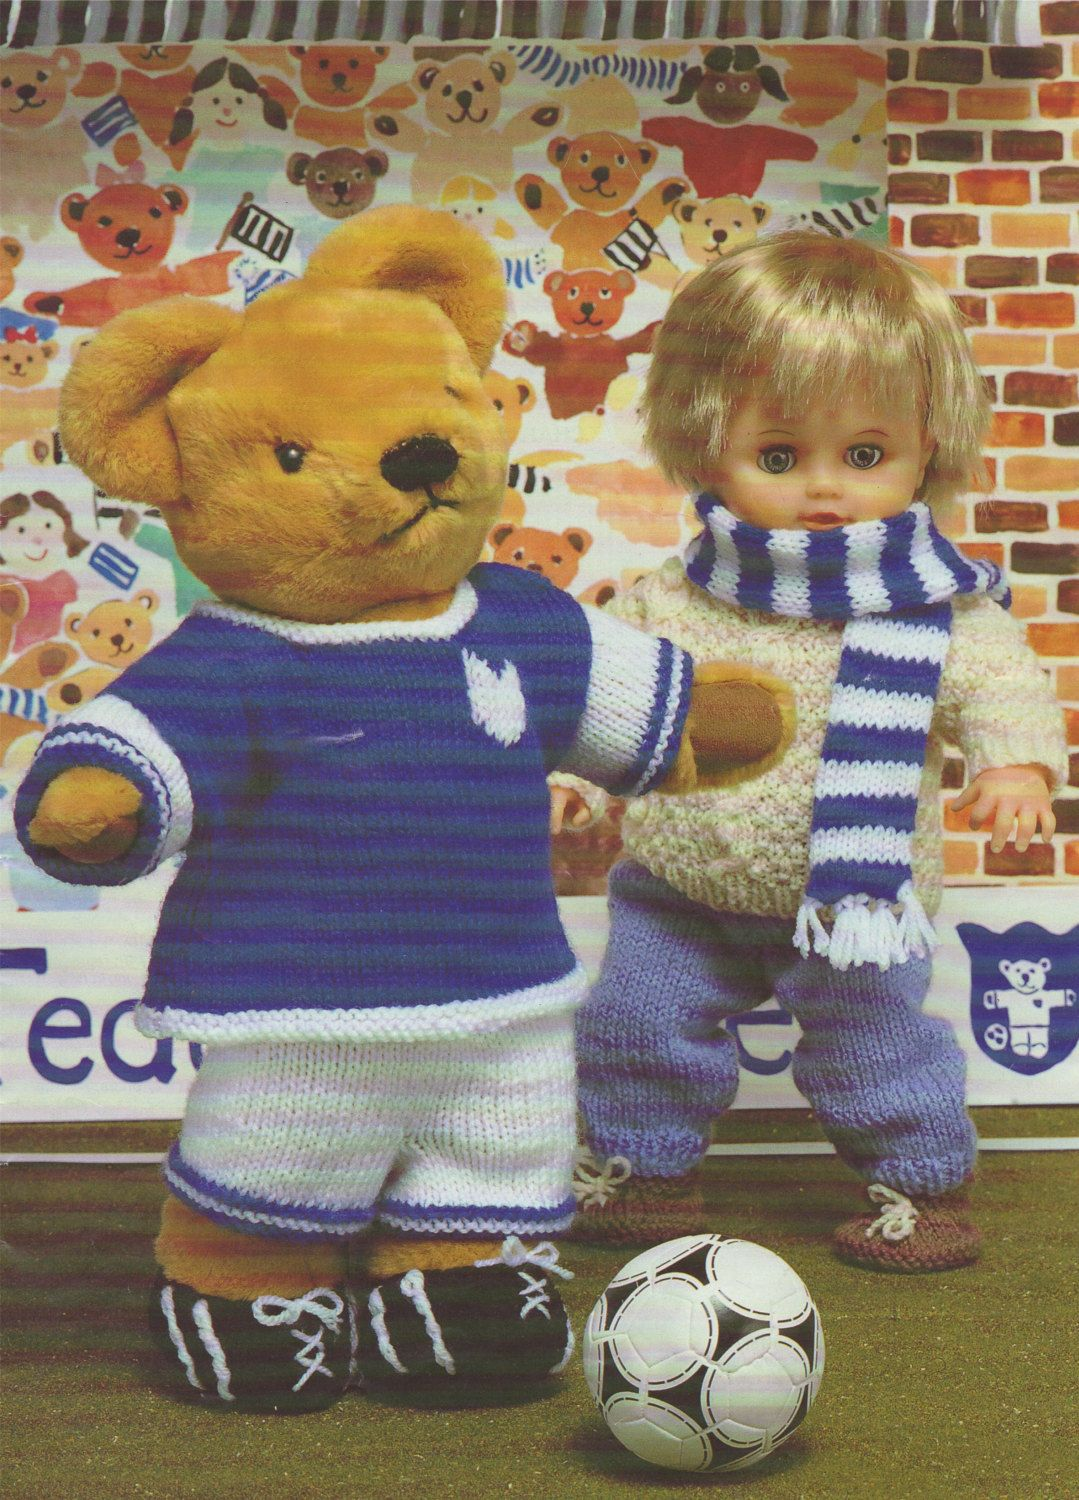 Teddy bear football kit dolly clothes knitting pattern 15 17 teddy bear football kit dolly clothes knitting pattern 15 17 and 19 inch bankloansurffo Gallery